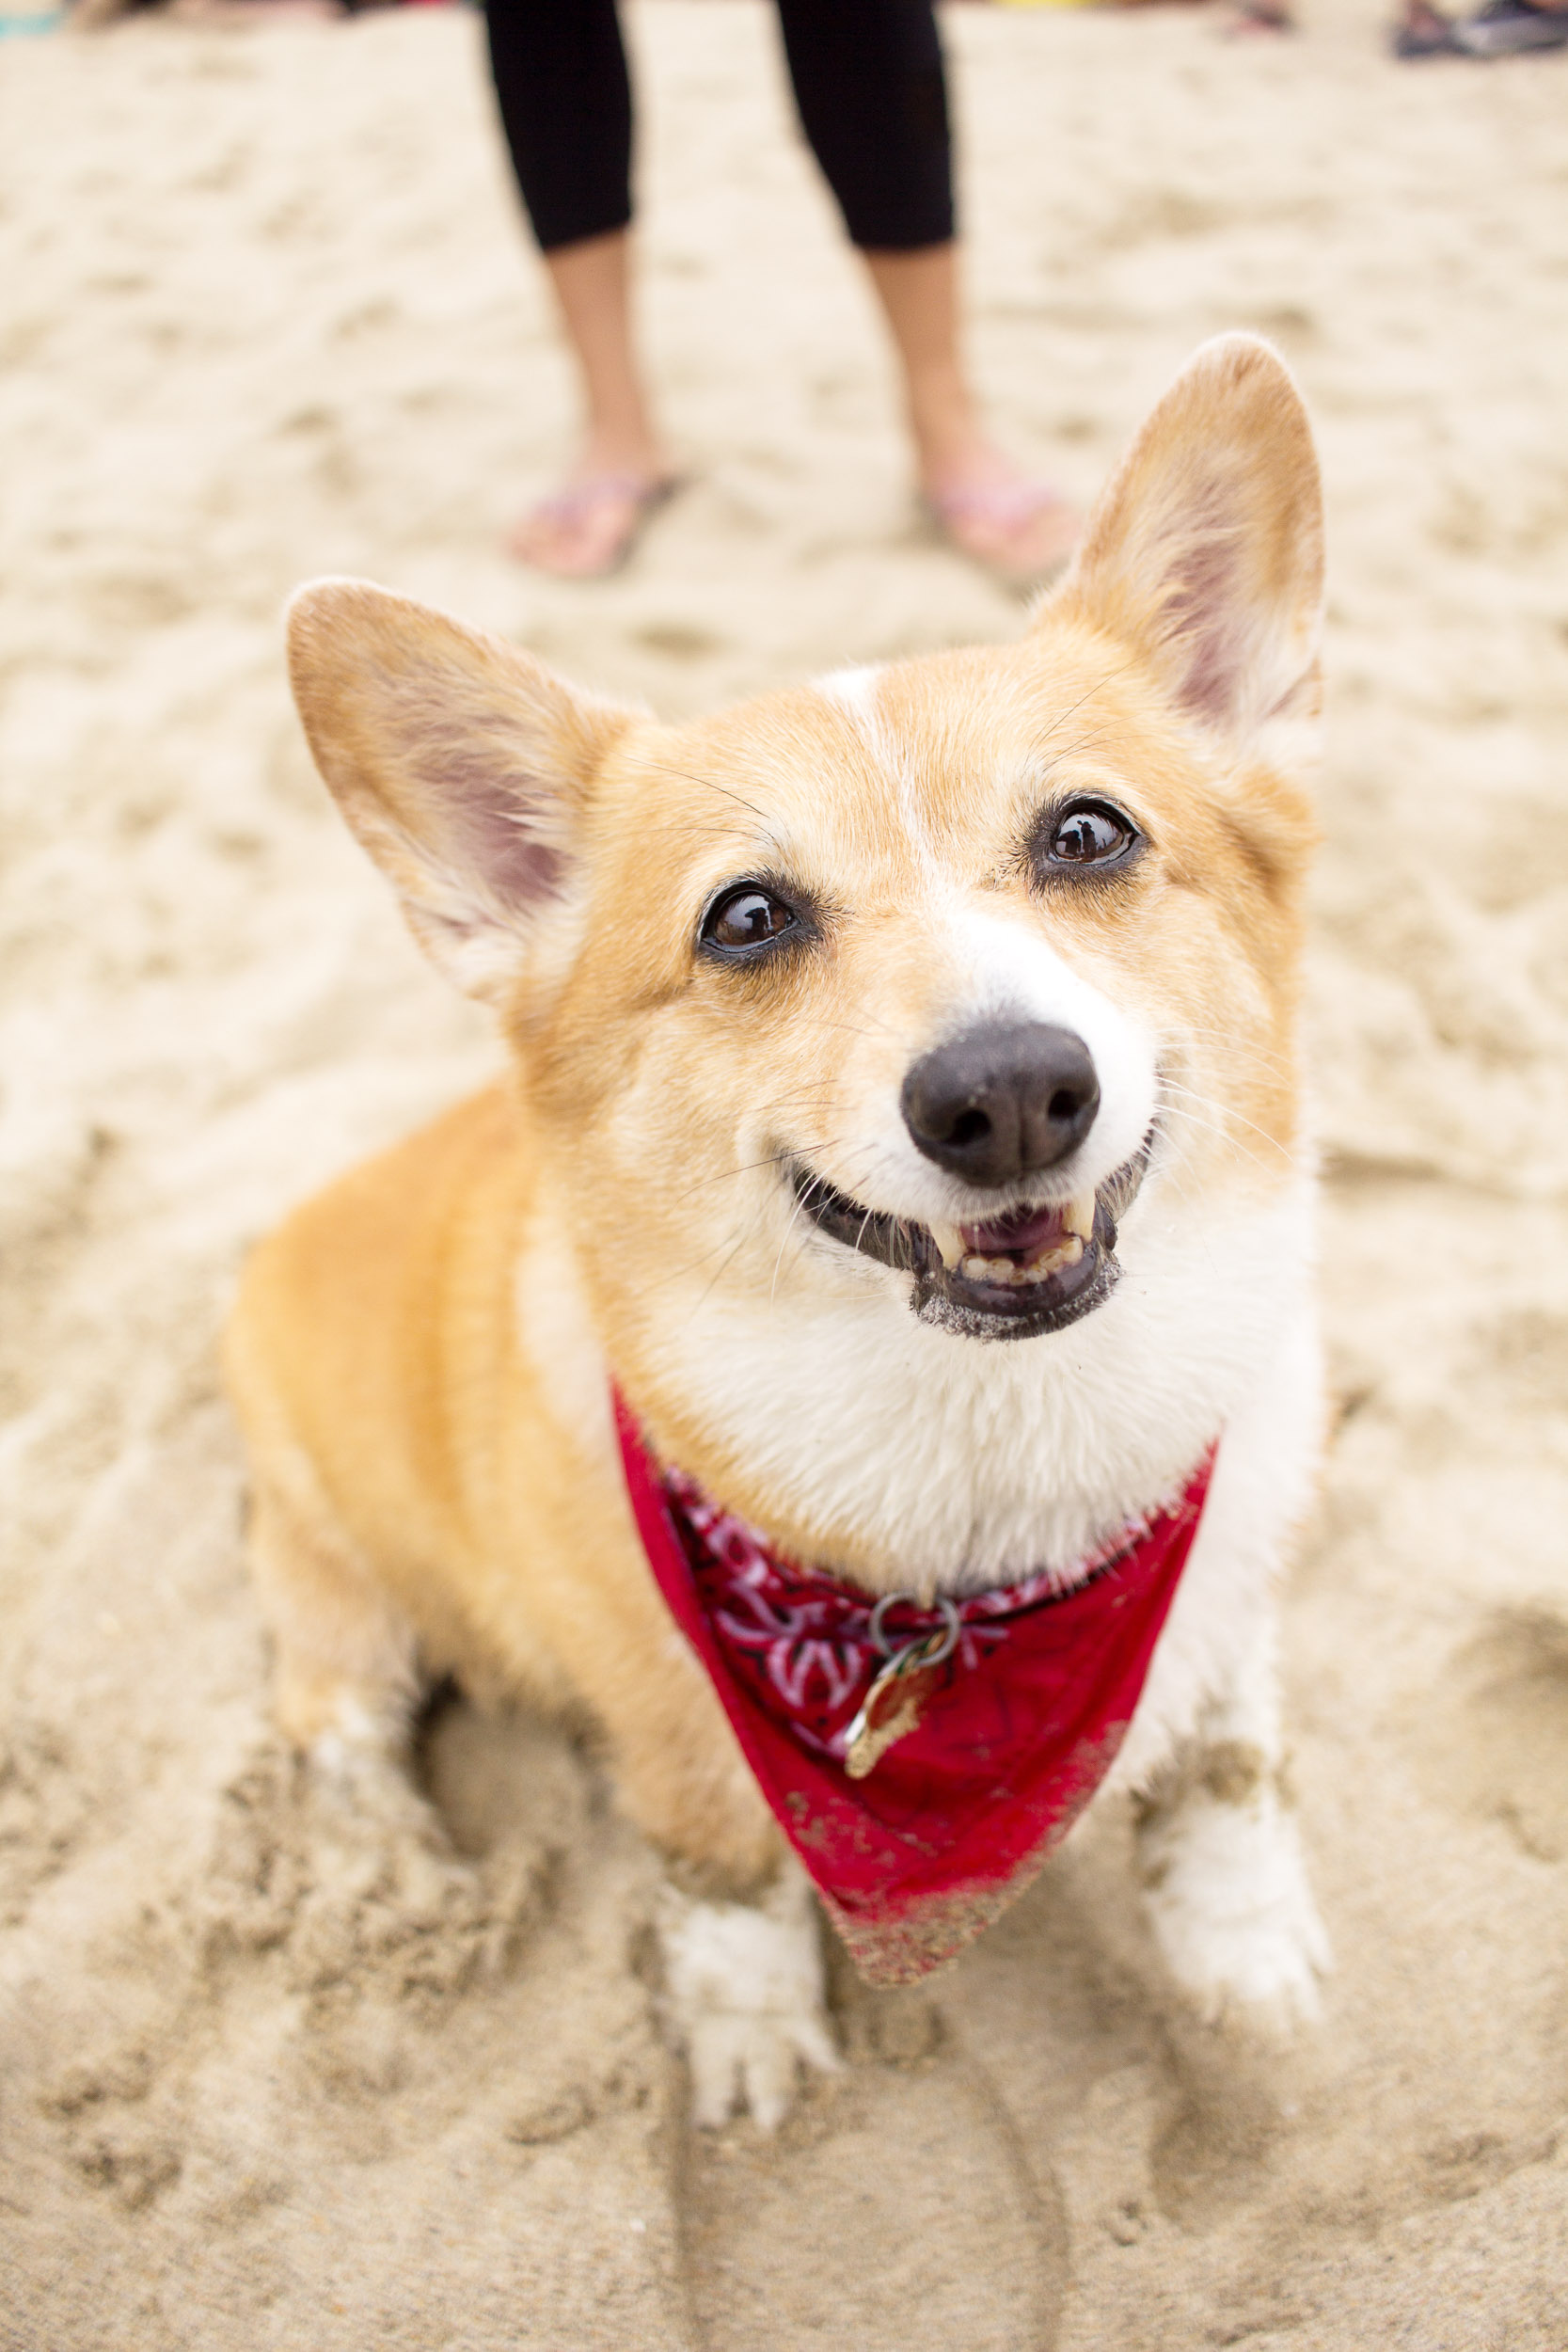 Orange-County-Dog-Photography-Pet-Huntington-Dog-Beach-SoCal-Corgi-Beach-Day_Steamer-Lee_031.JPG